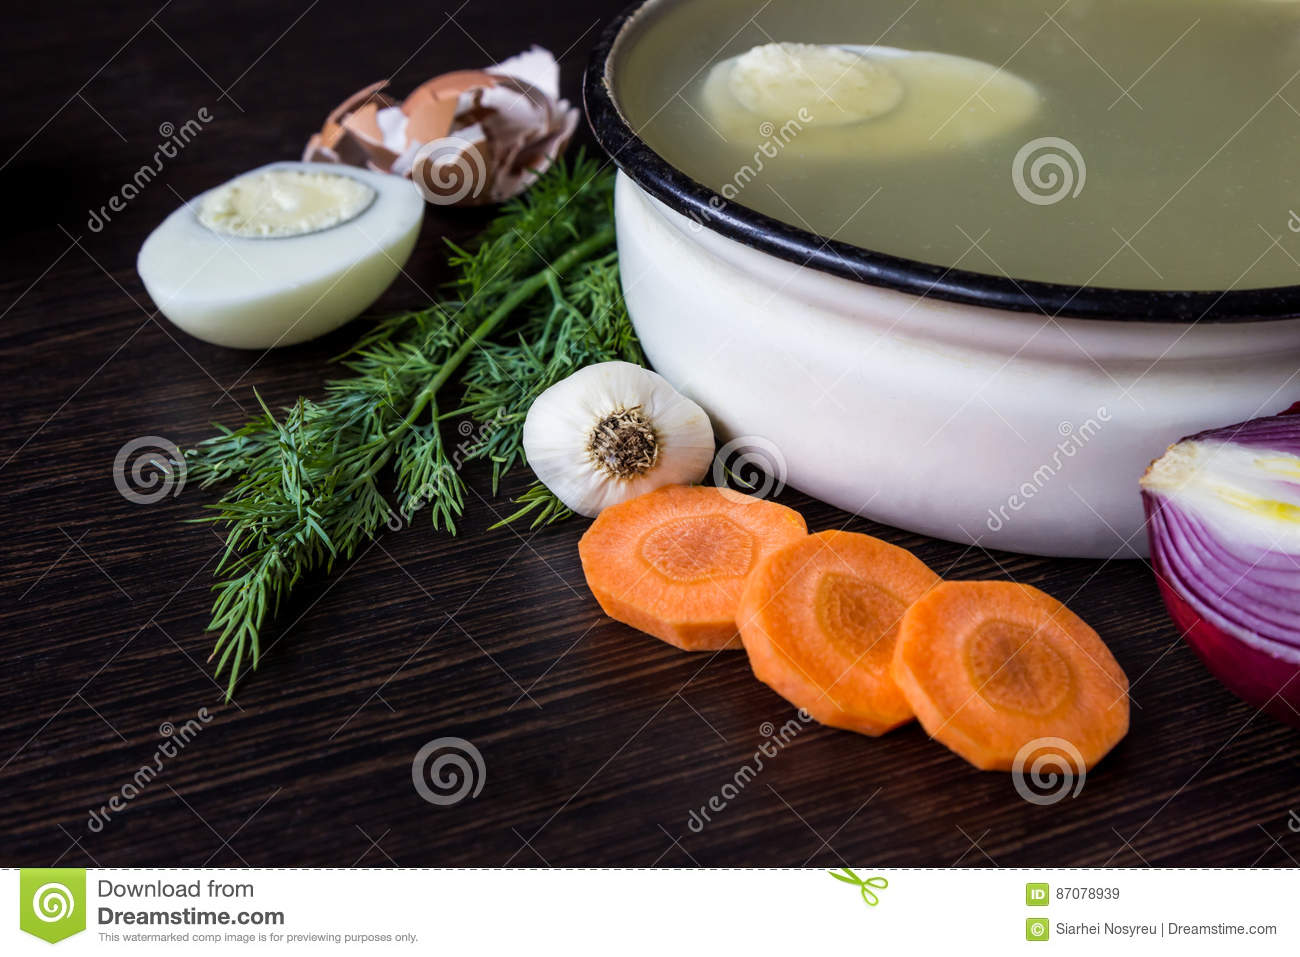 Soup with sorrel, vegetables and boiled egg, red onion, carrots, garlic, dill on dark wooden table.